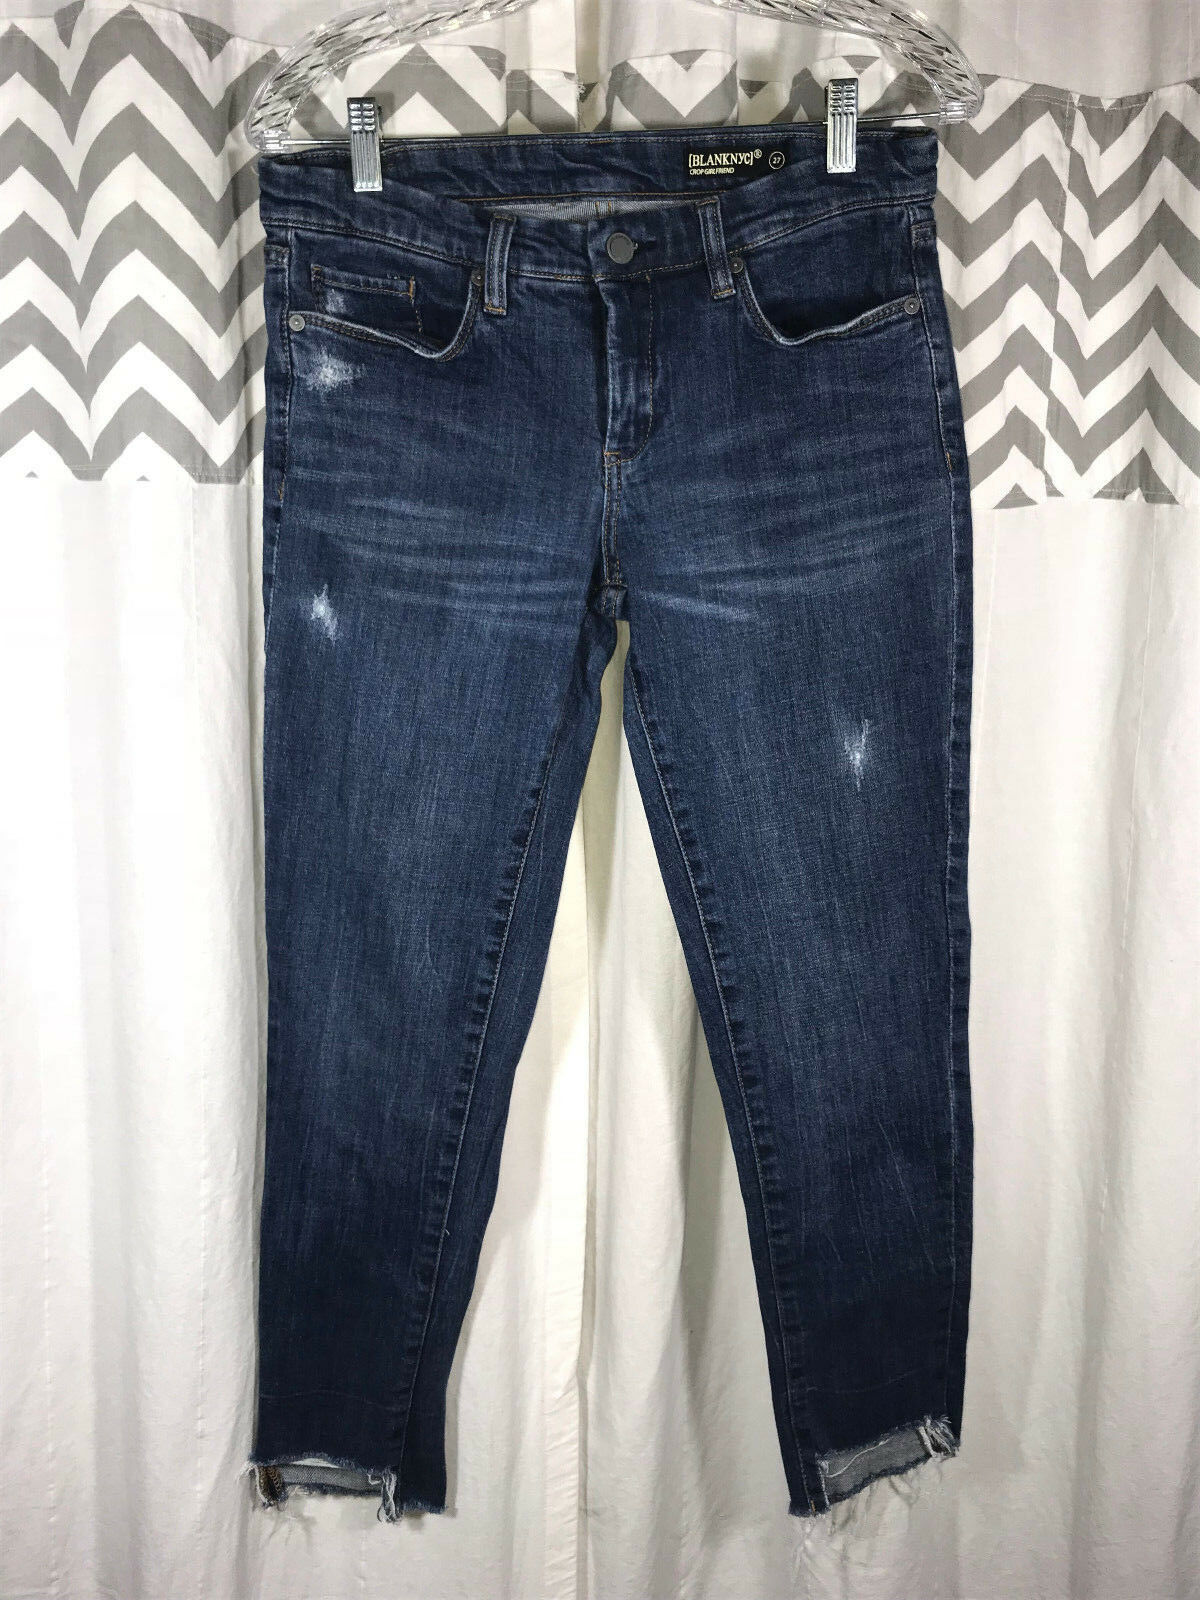 BLANK NYC Crop Girlfriend Size 27 4 Denim Jeans High Low Cuff Distressed PERFECT